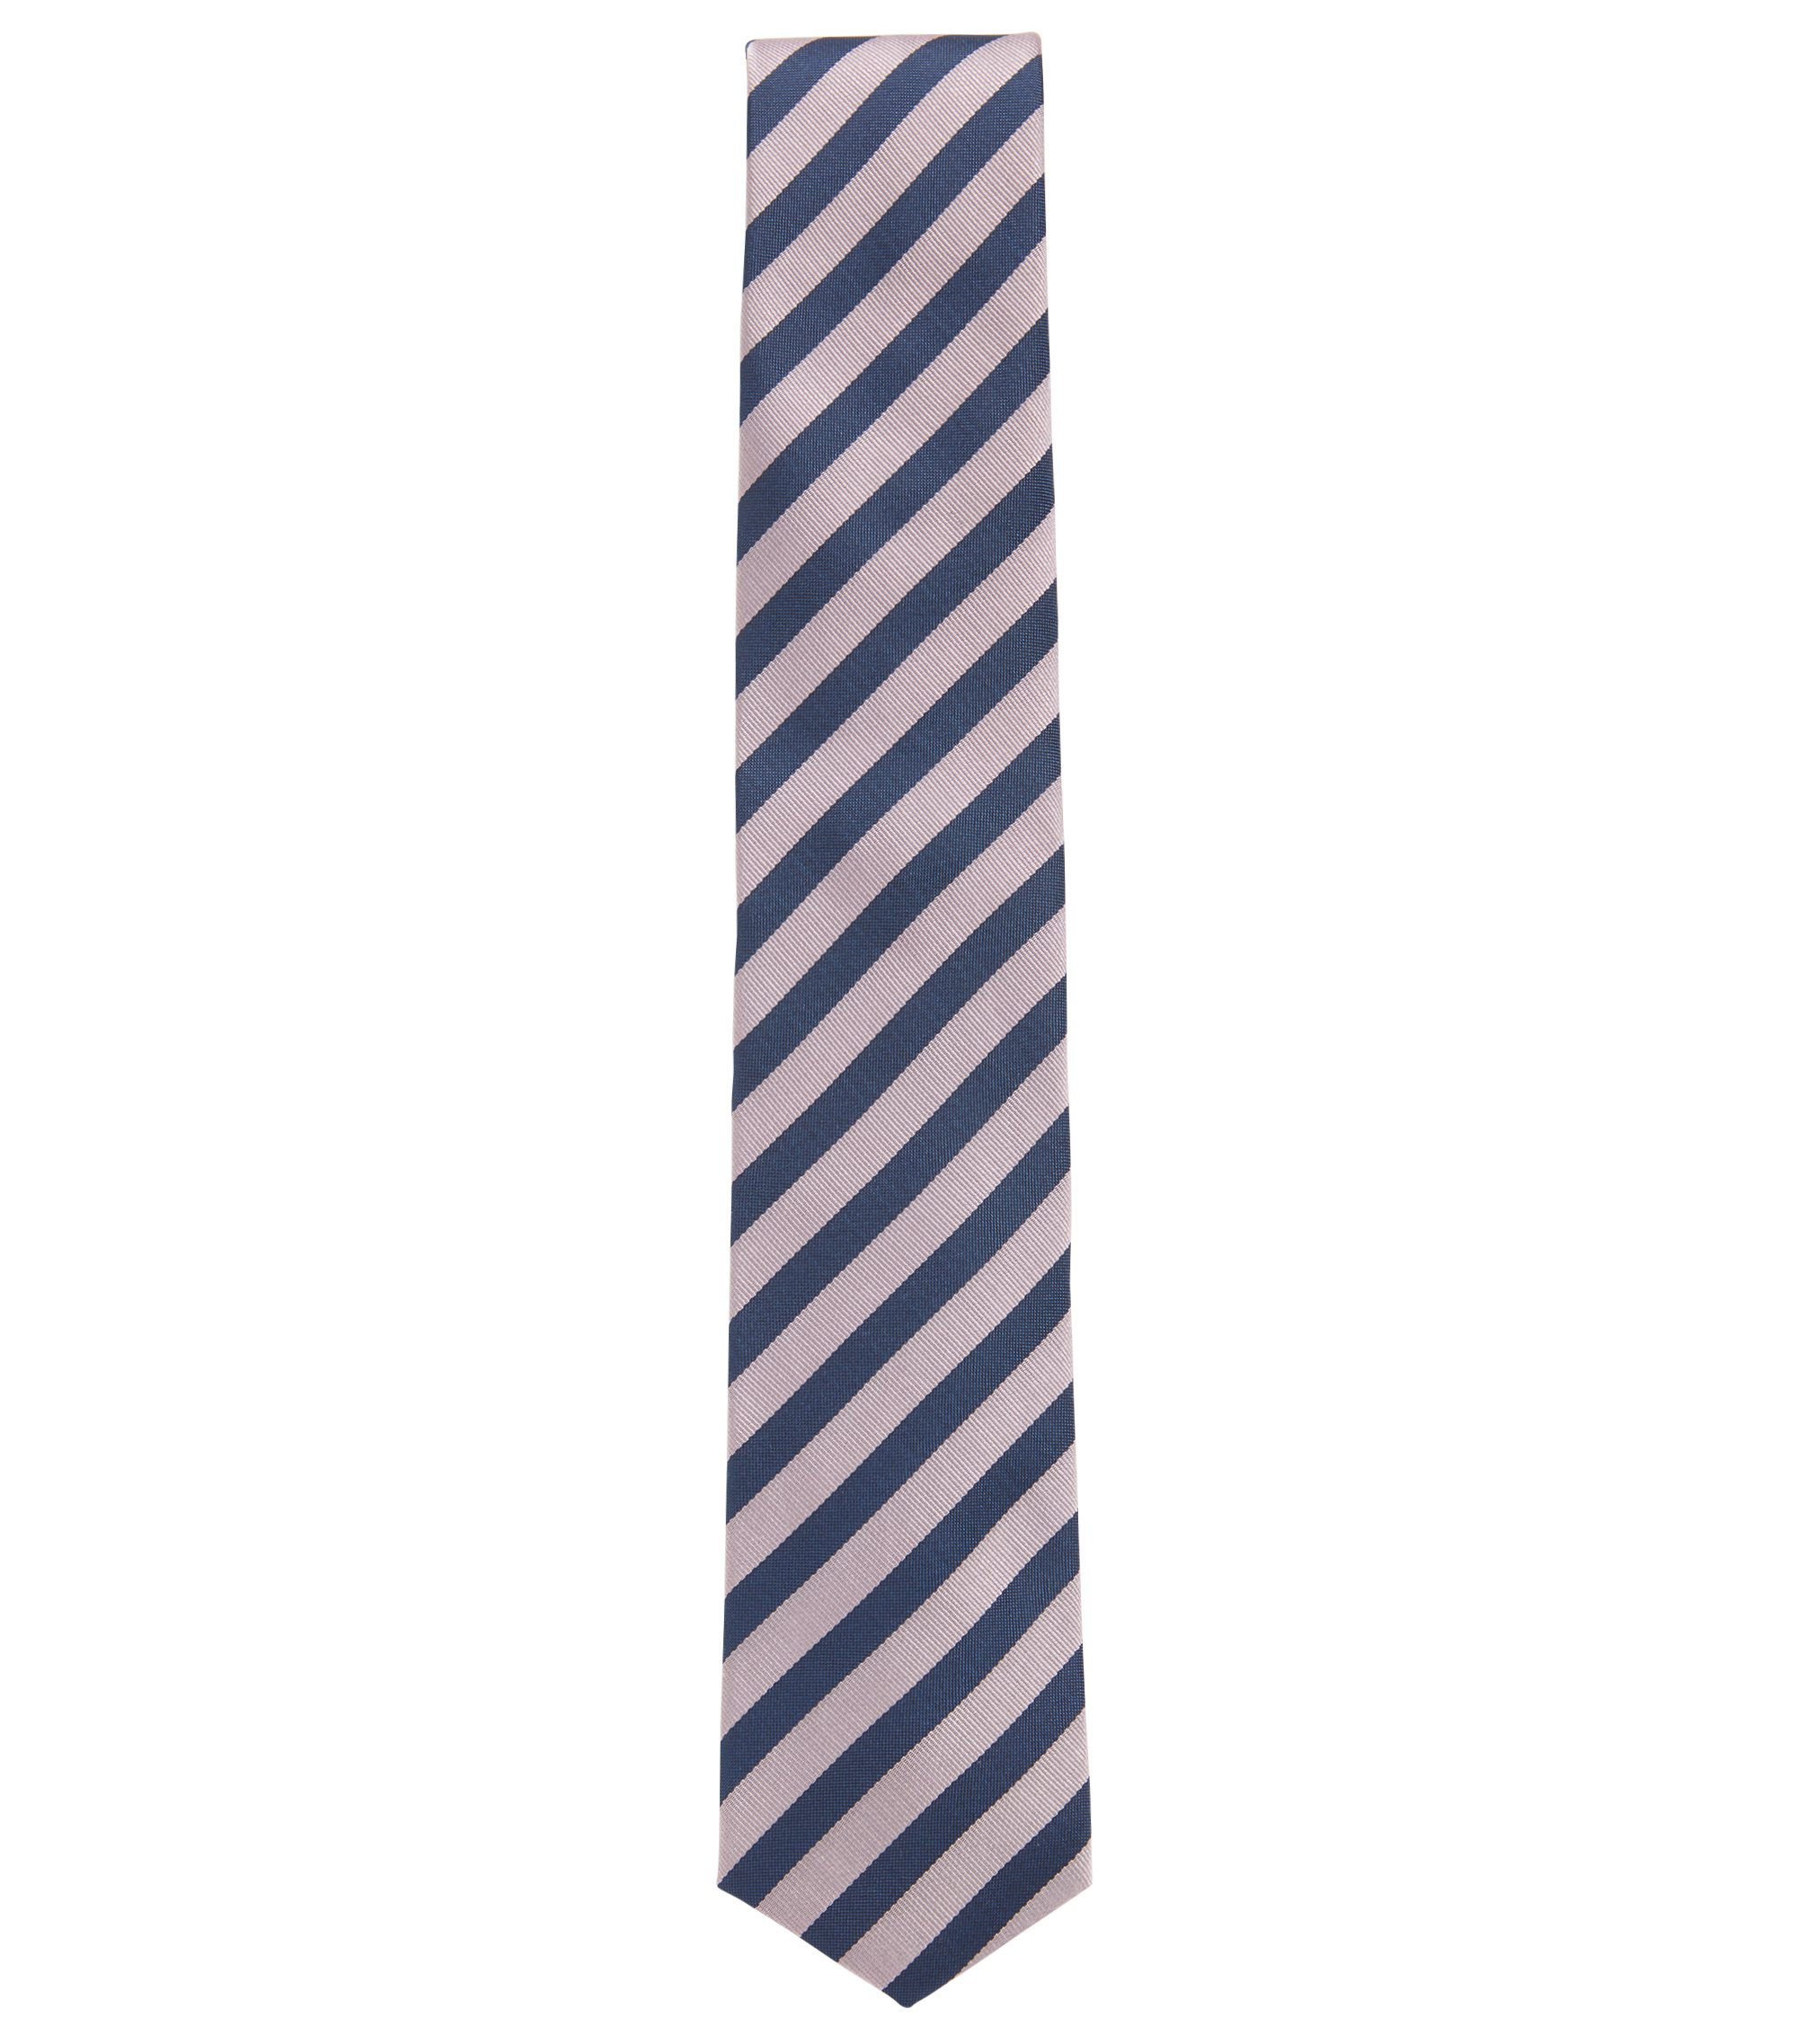 Diagonal-striped tie in water-repellent silk with shaped end, light pink